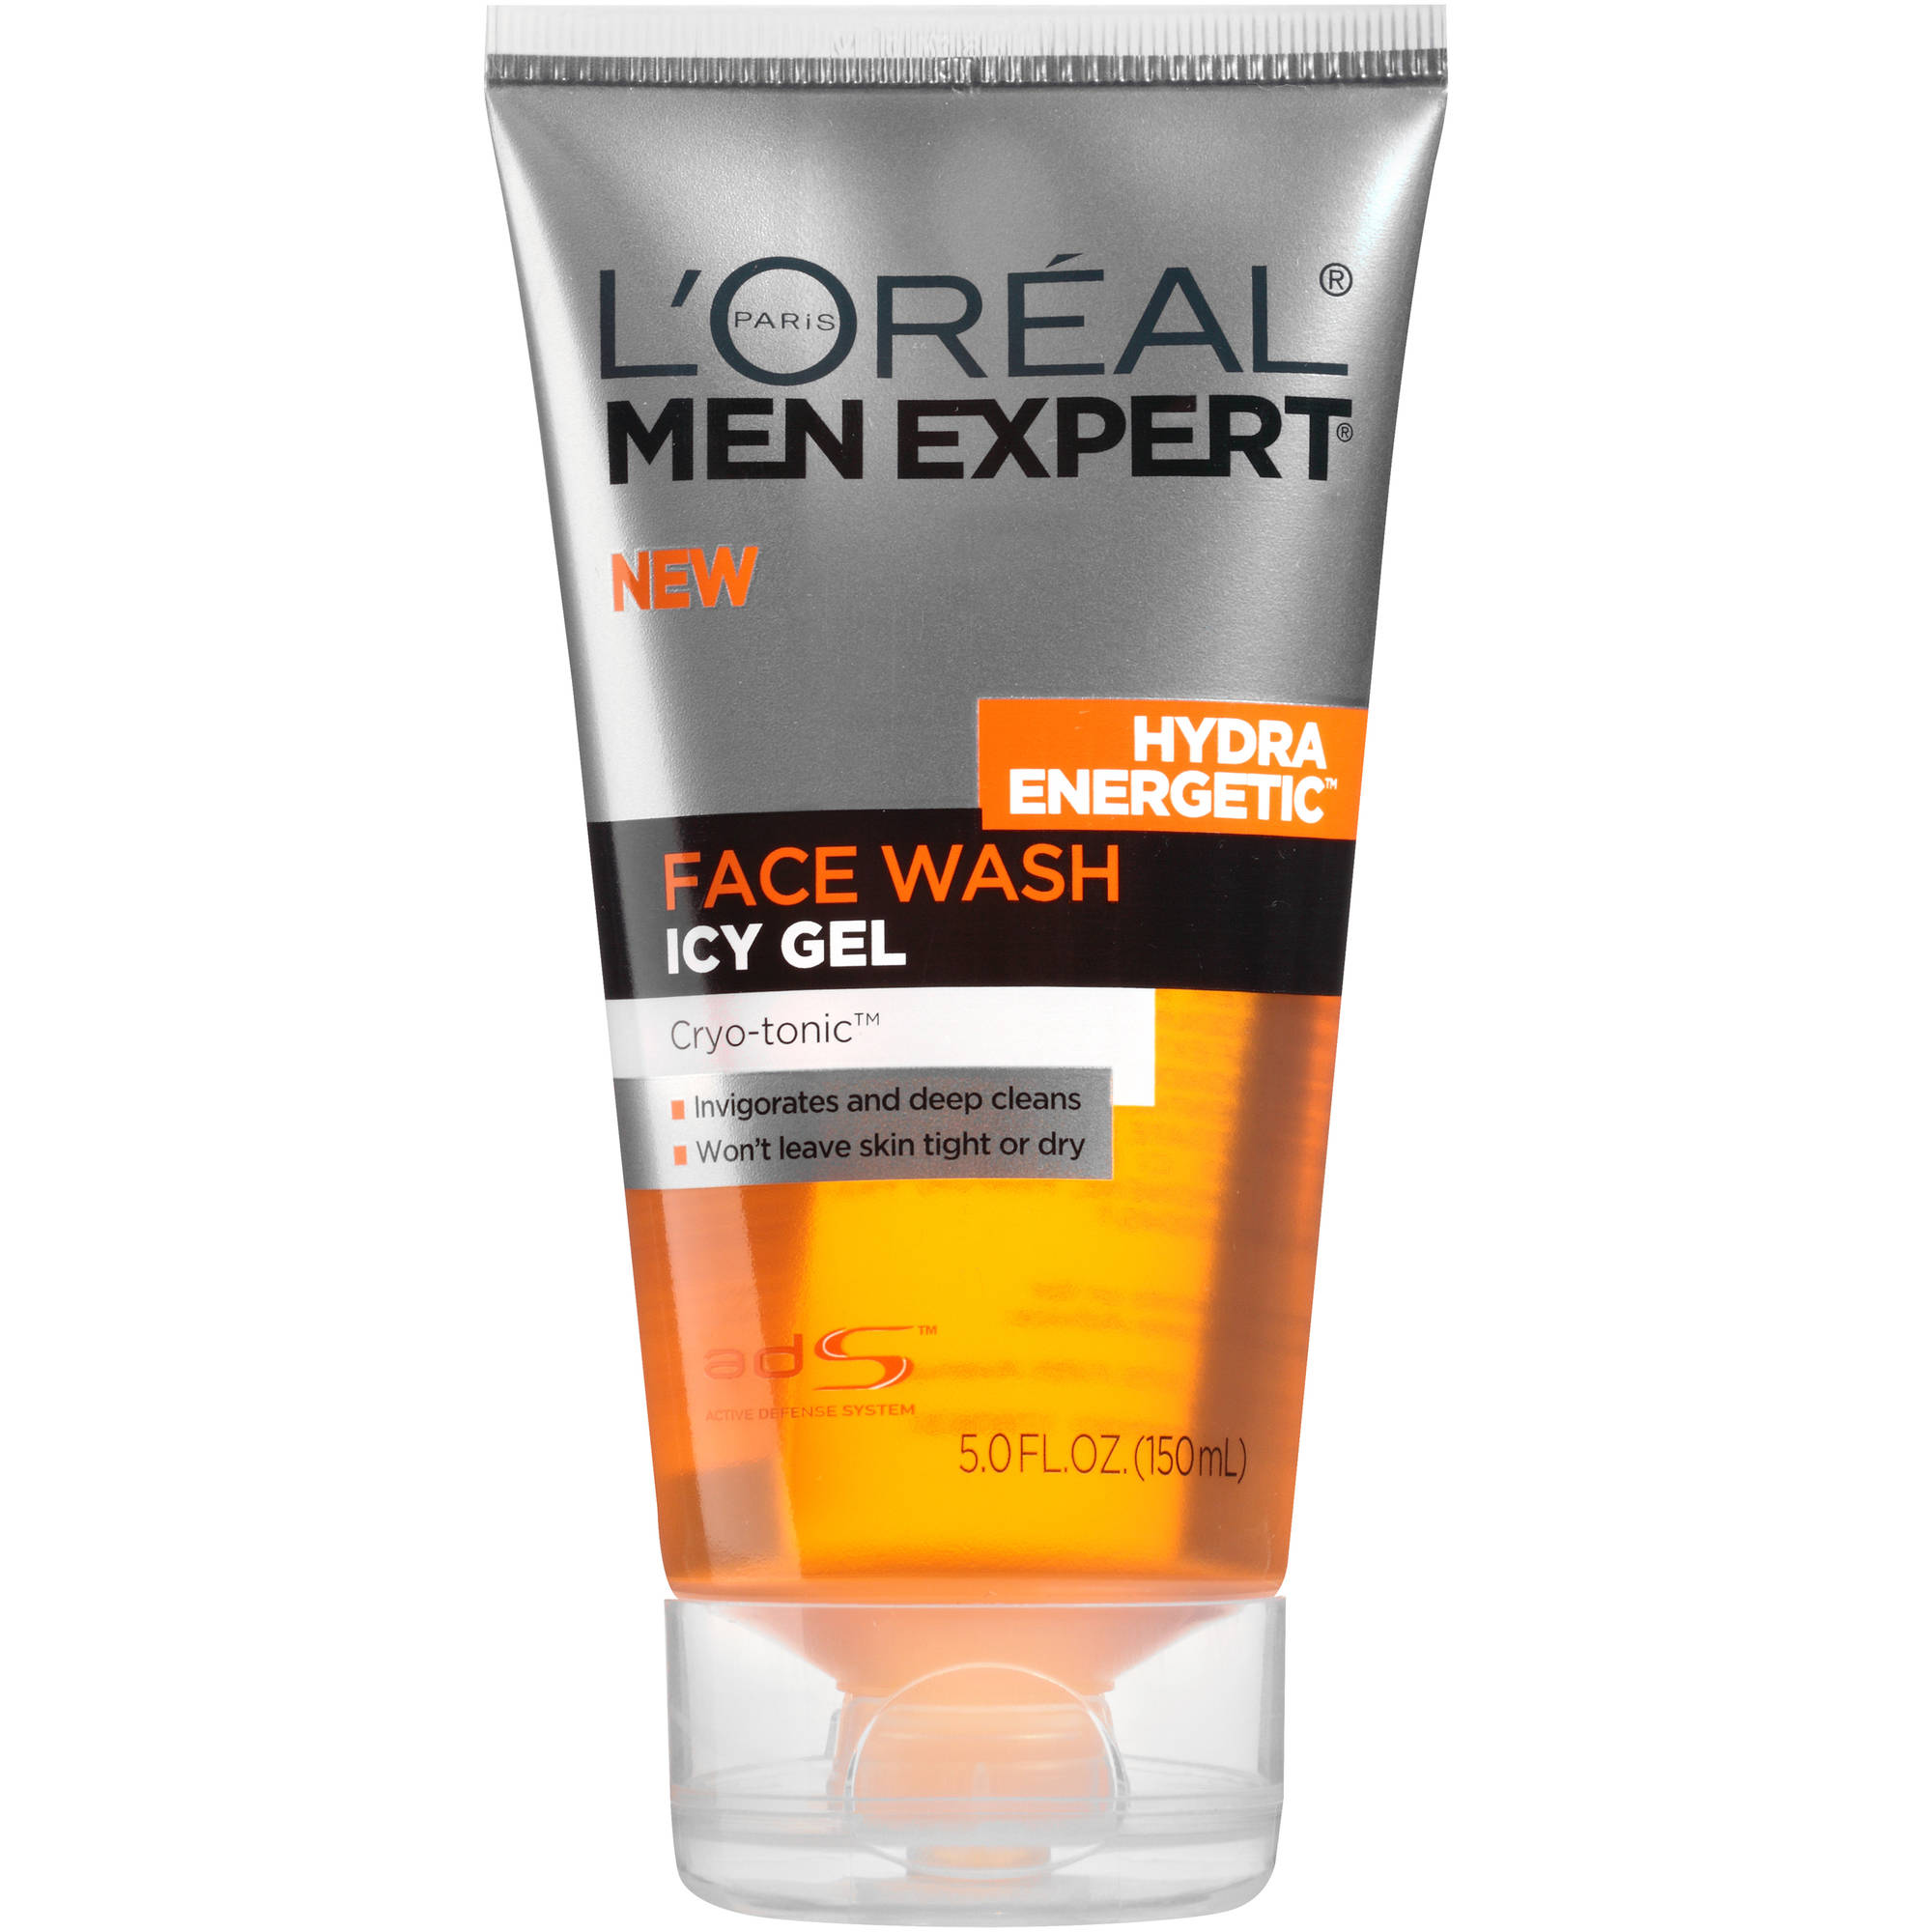 Loreal Mens Expert Hydra Energetic Icy Gel Face Wash 5.0 oz - Walmart.com